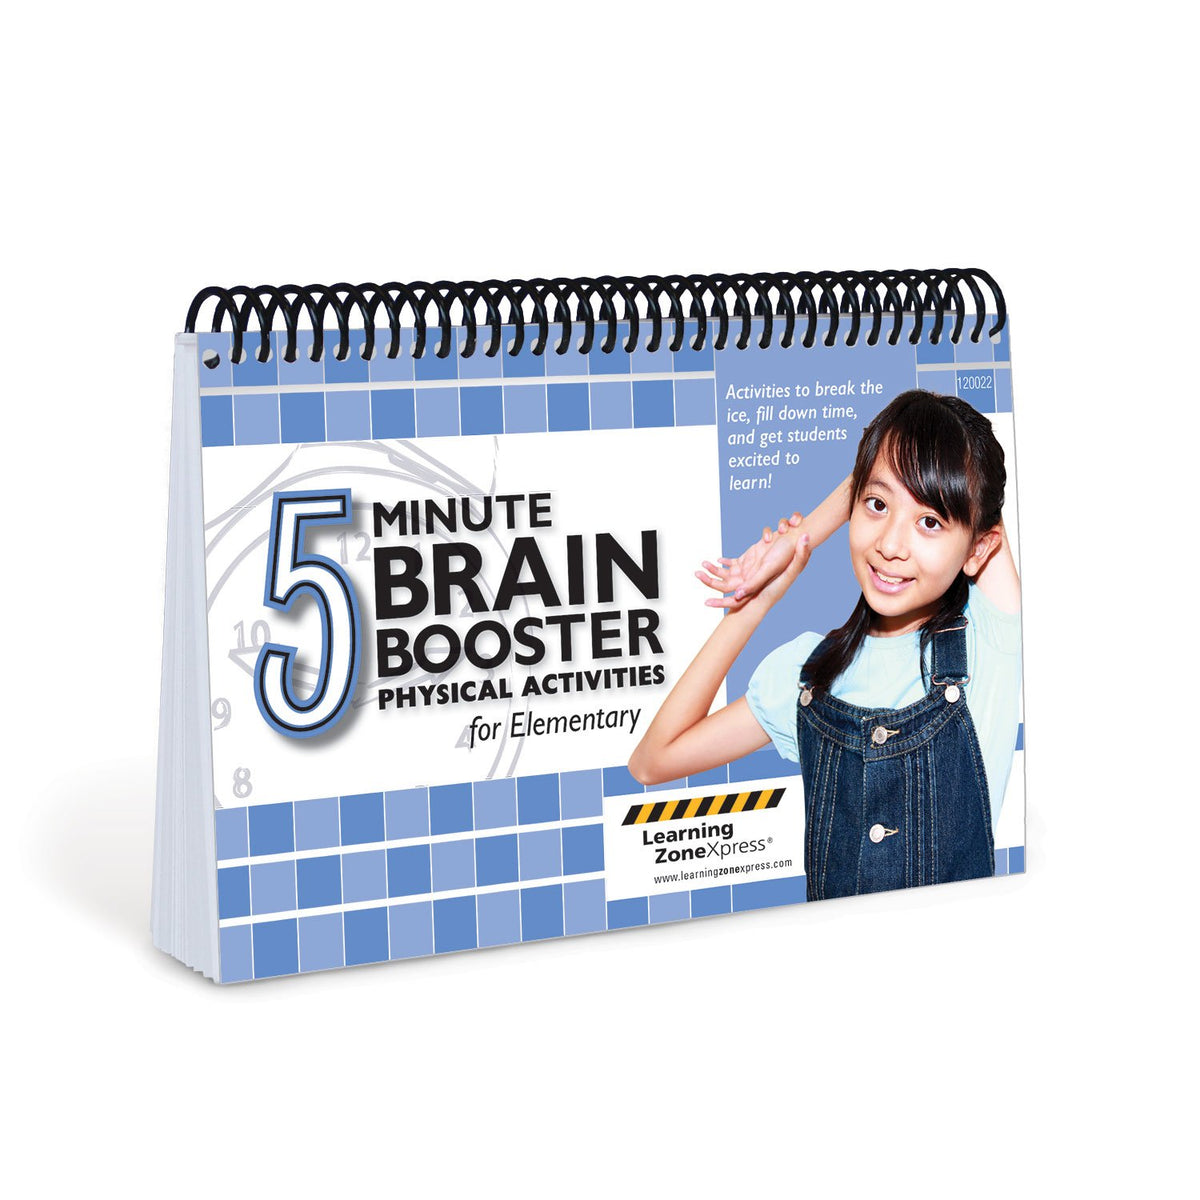 5 Minute Brain Booster Physical Activities for Elementary